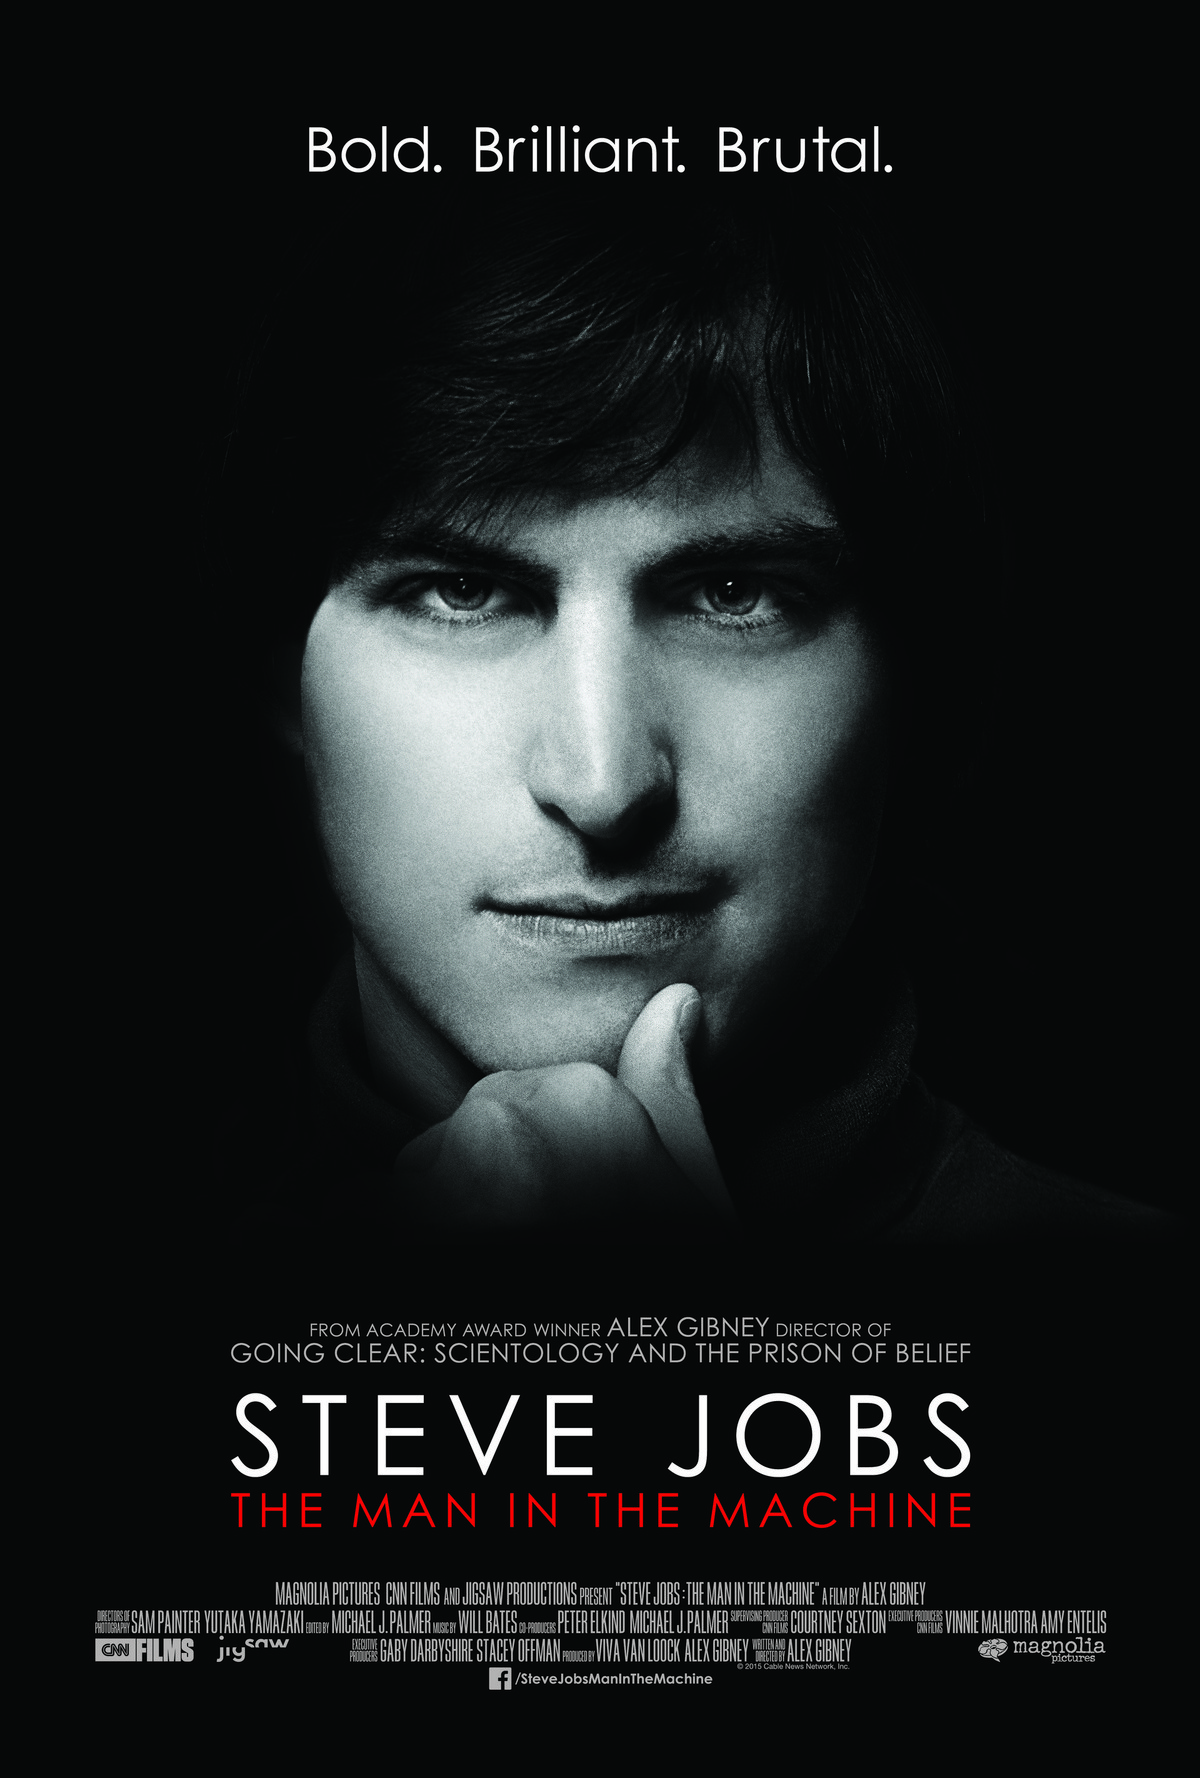 trailer-do-filme-steve-jobs-the-man-in-the-machine